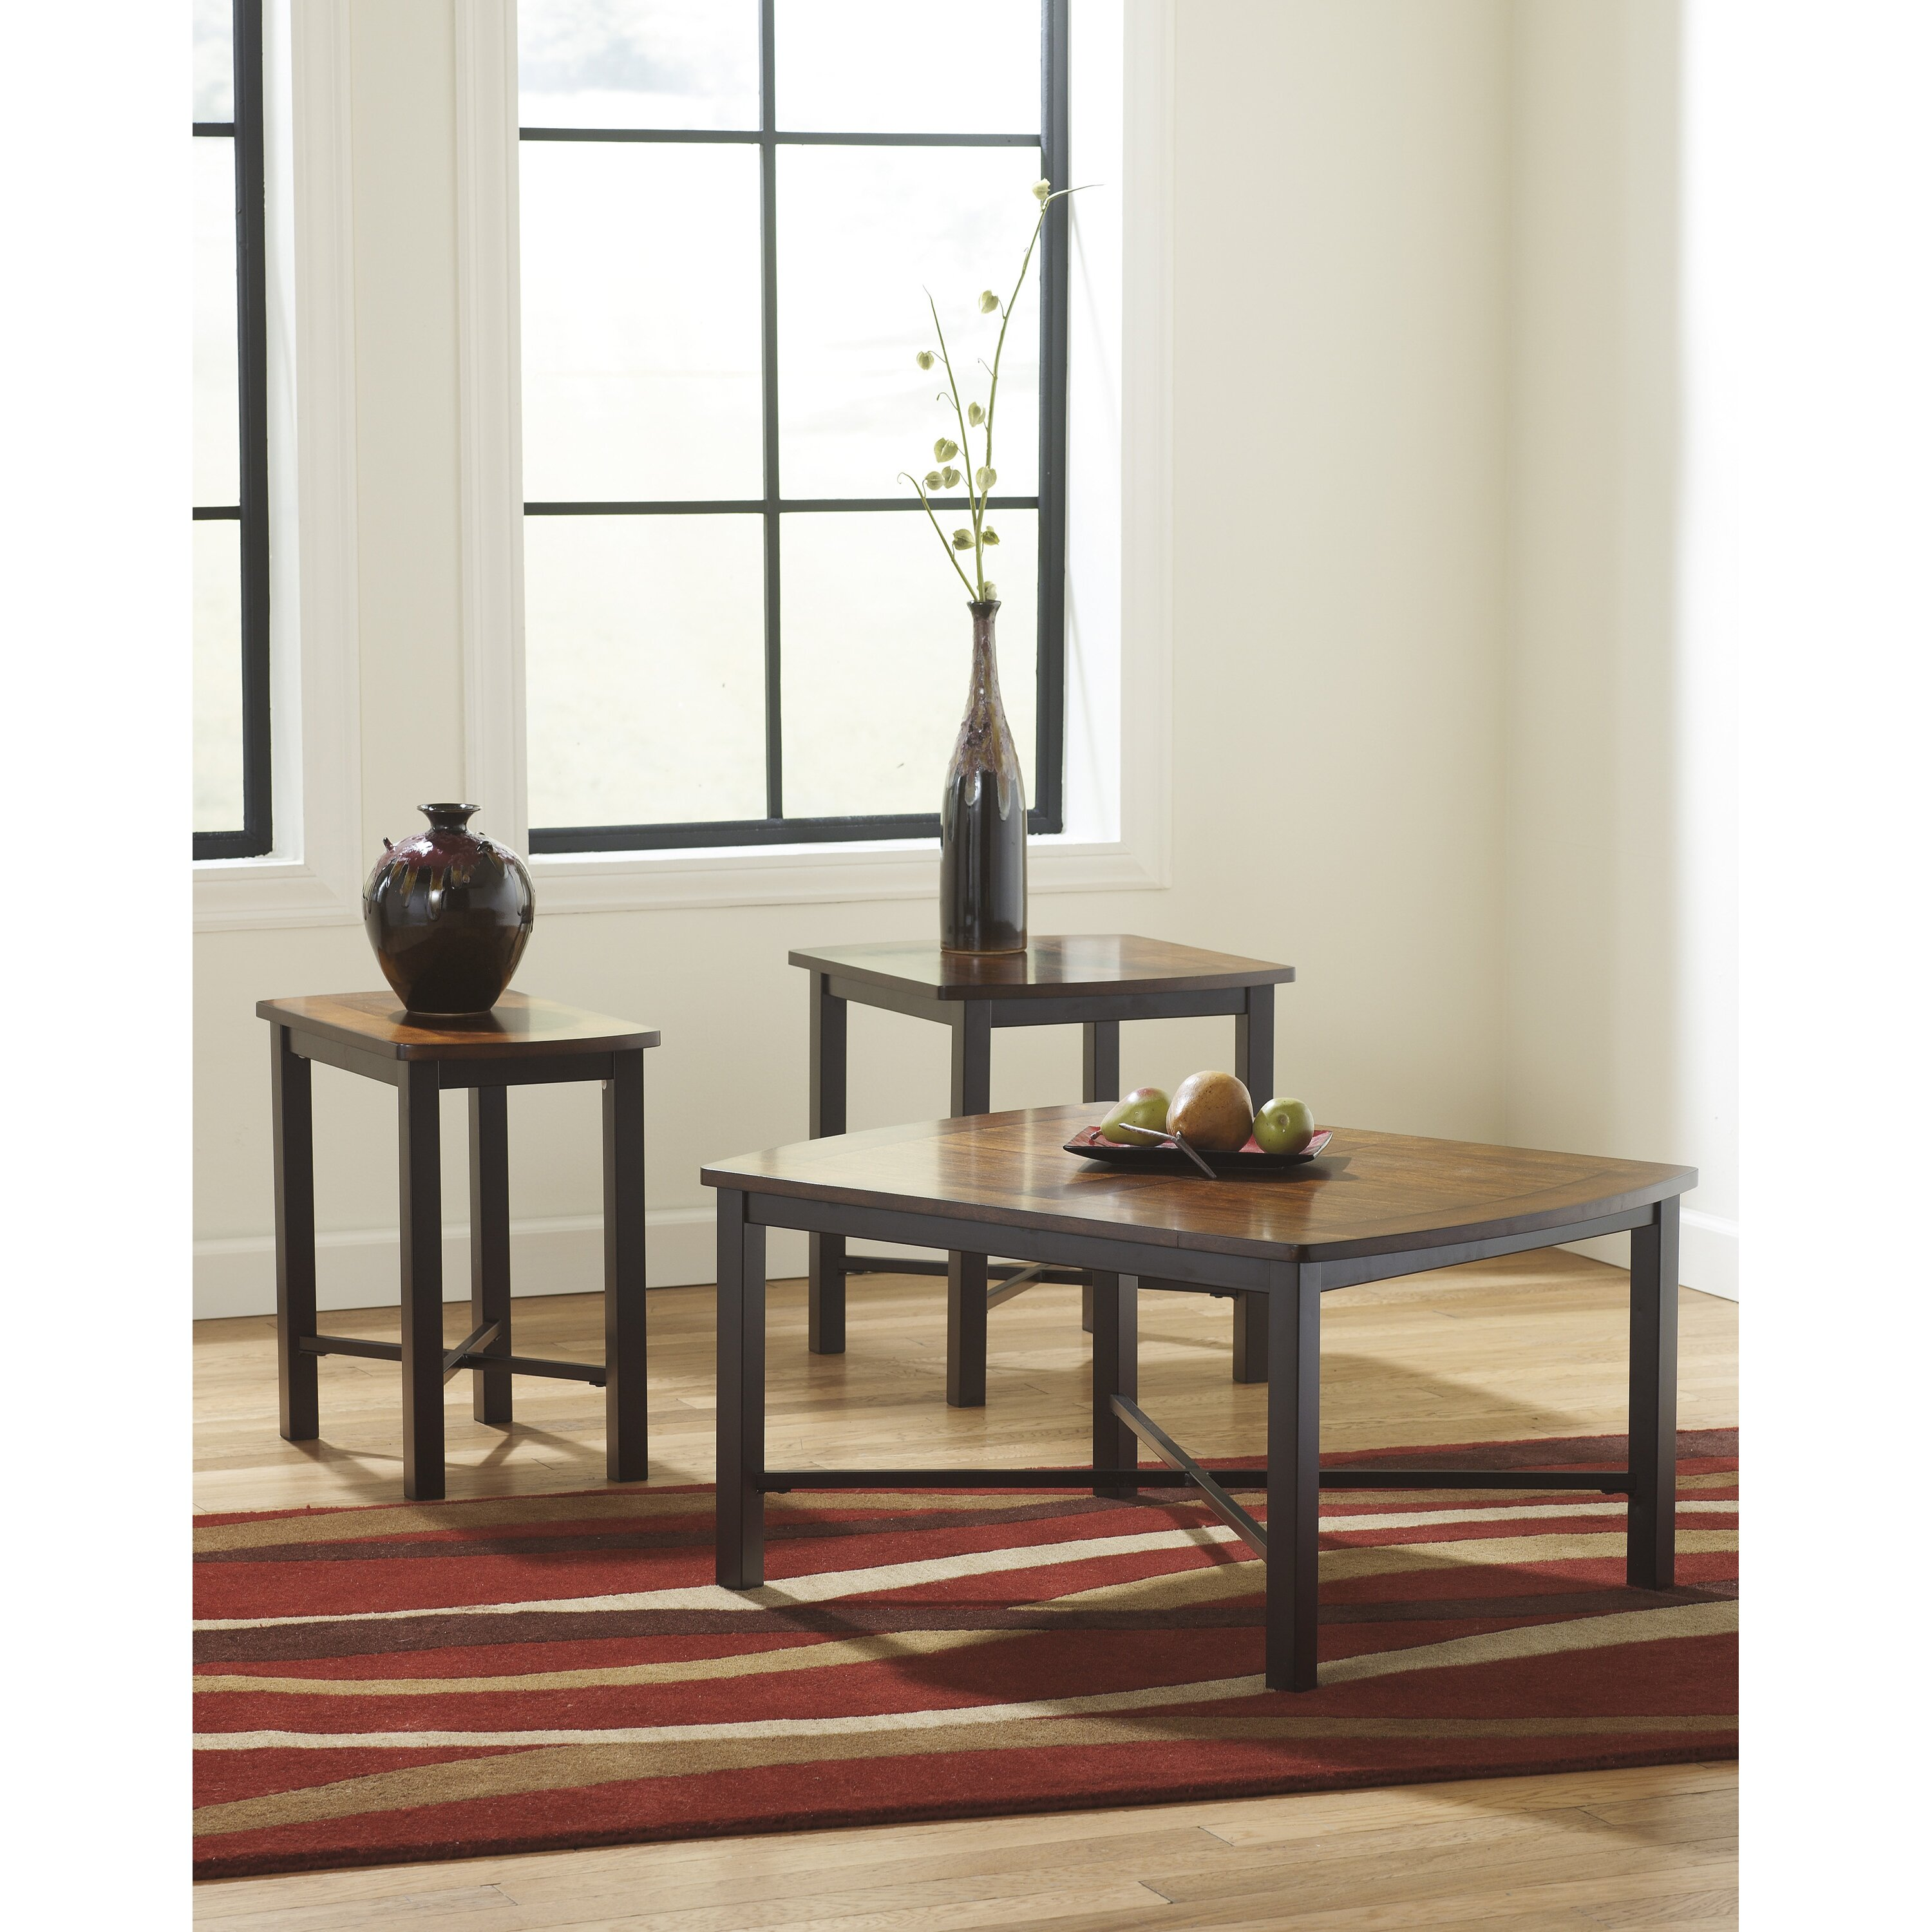 Flash furniture fletcher 3 piece coffee table set reviews wayfair One piece glass coffee table